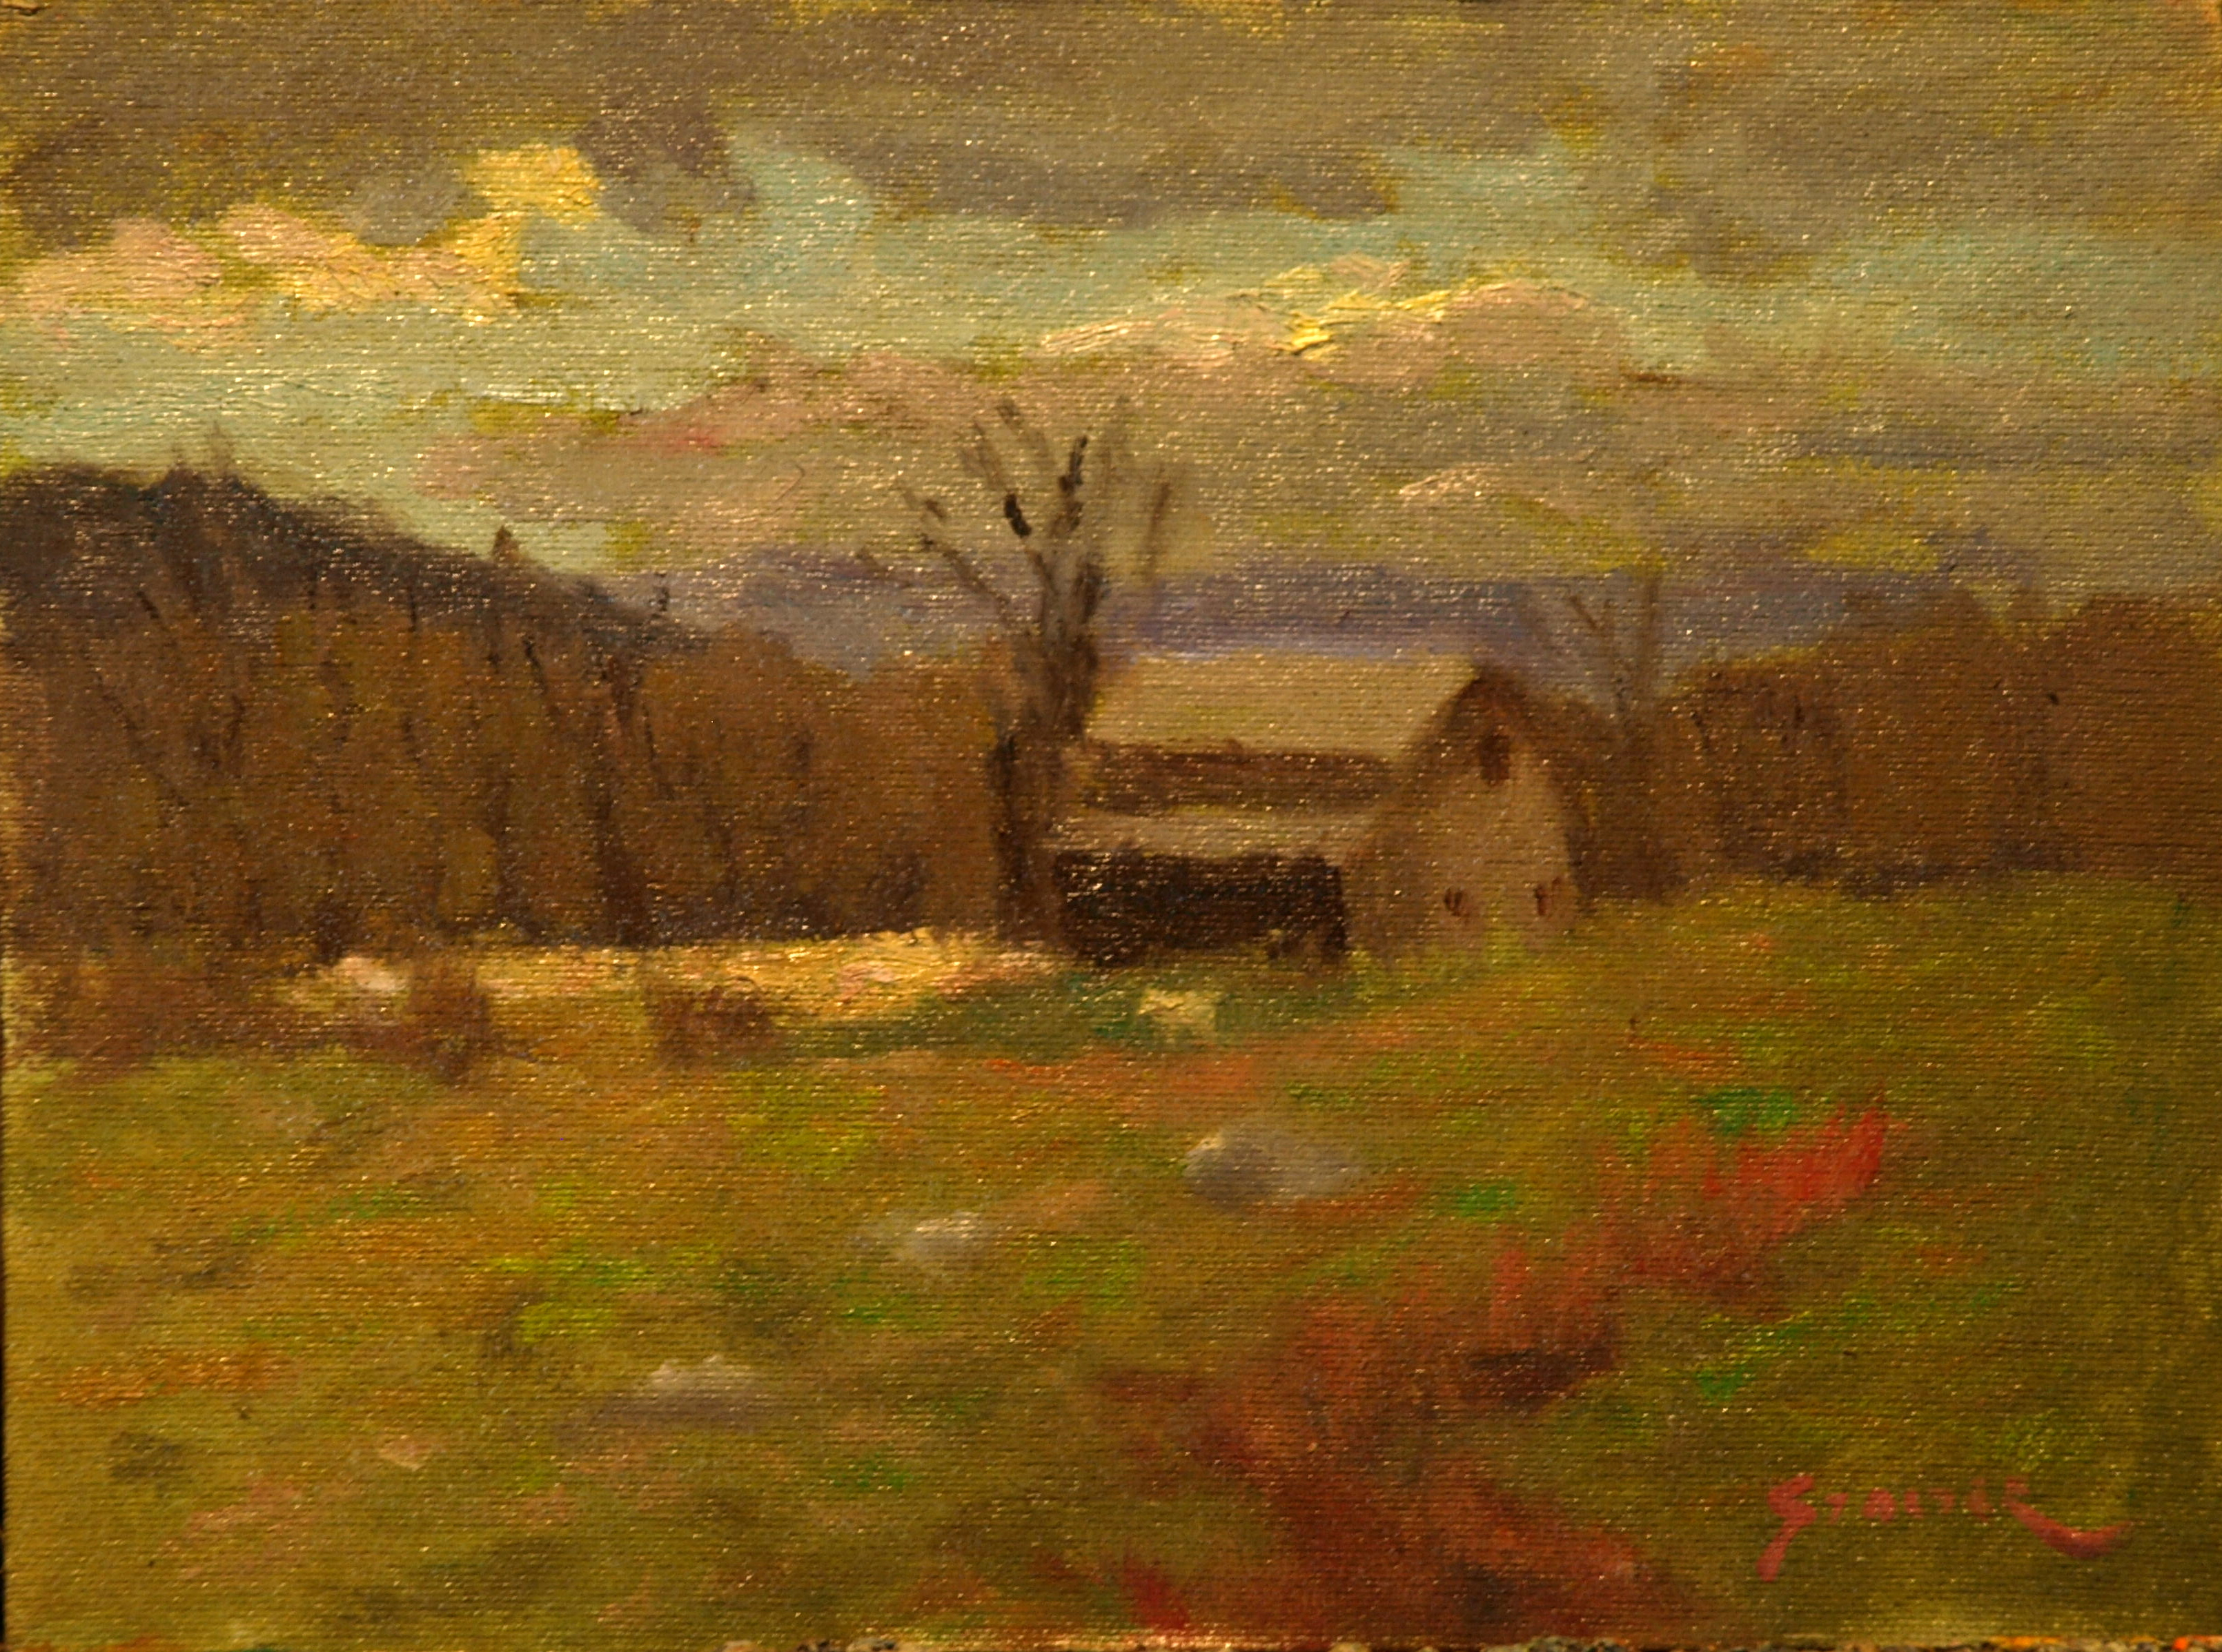 Lindburgh Barn, Oil on Canvas on Panel, 9 x 12 Inches, by Richard Stalter, $225